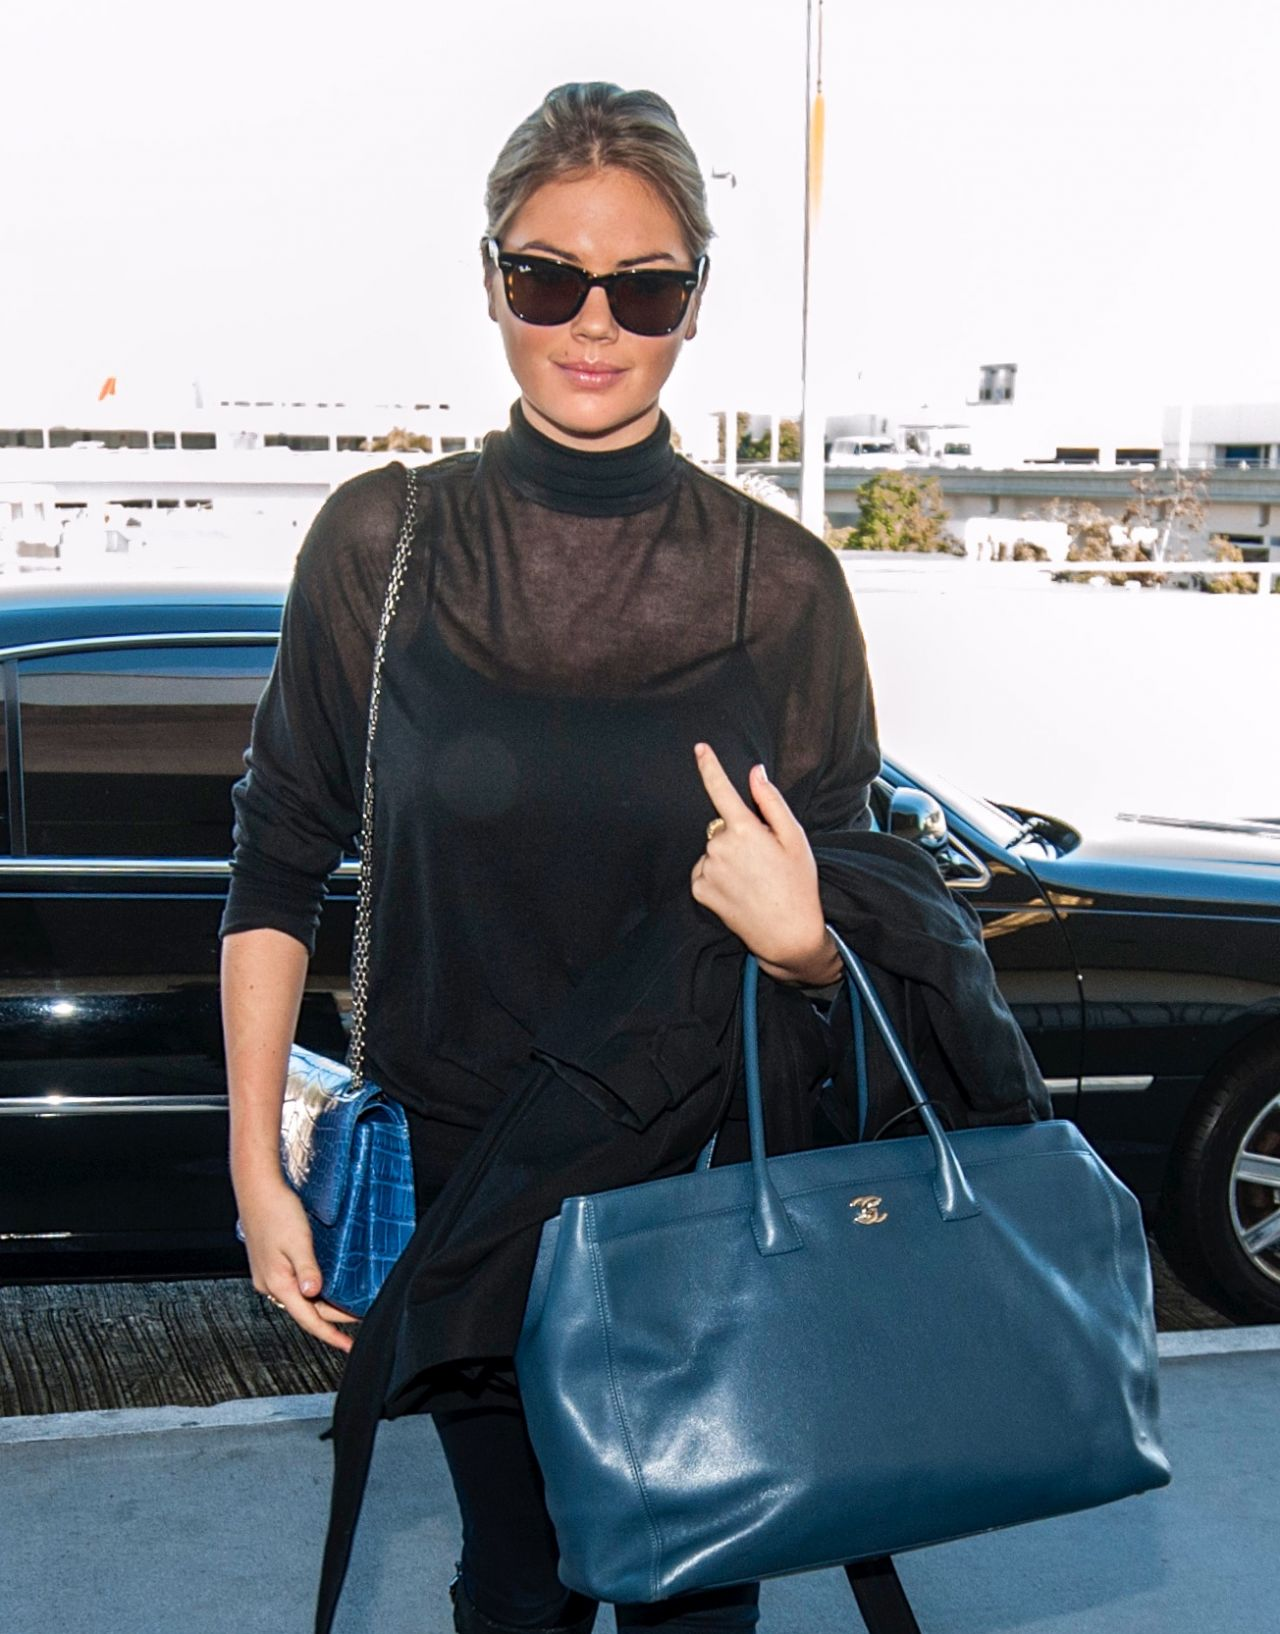 Kate Upton Street Style  - at LAX Airport in Los Angeles - November 2013